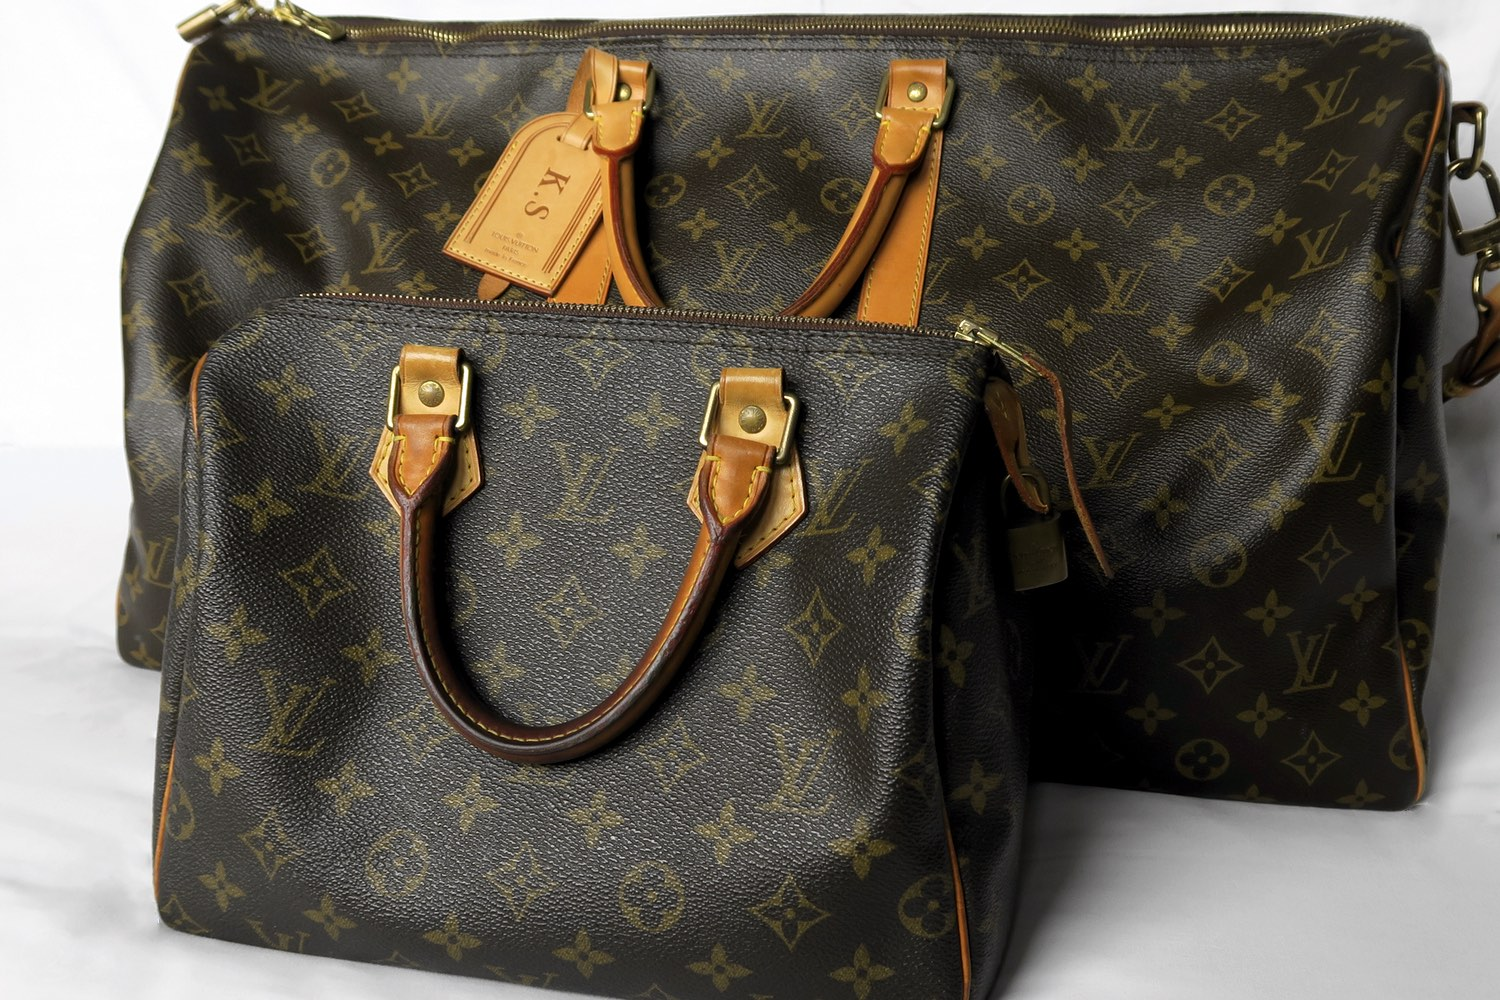 e40c1756f3d3 new-louis-vuitton-keepall-55-strap-speedy-25-momogram.jpg format 1500w